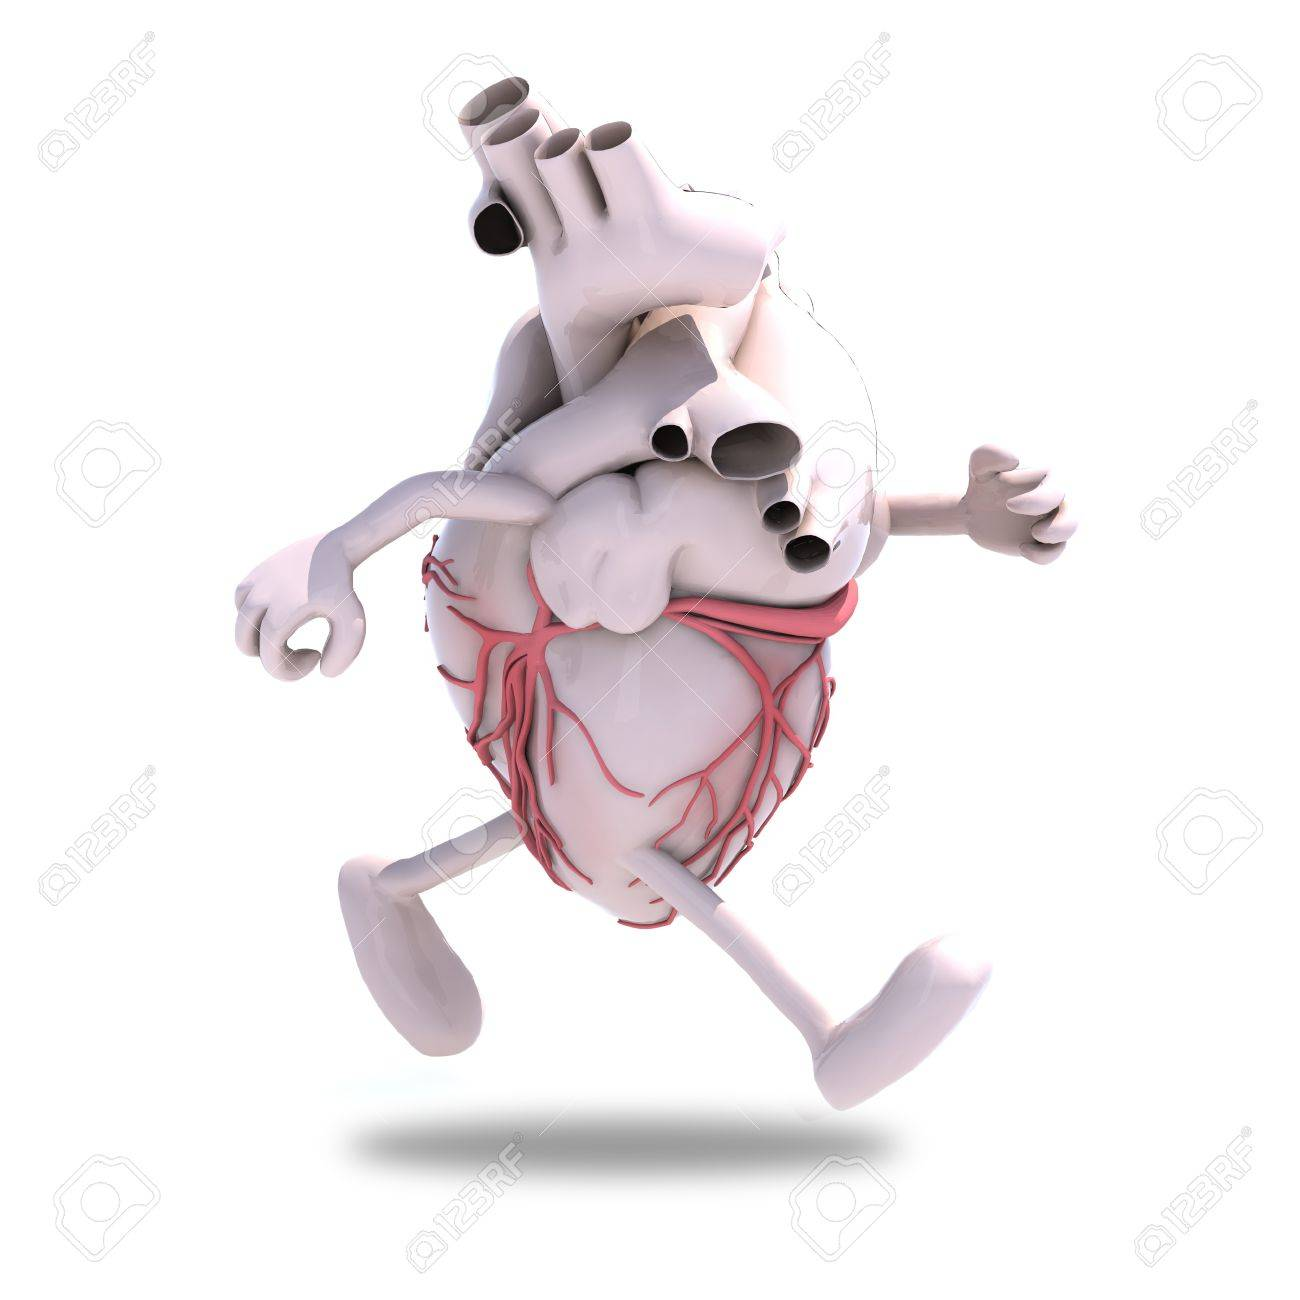 human heart with arms and legs running, 3d illustration Stock Illustration - 16903729